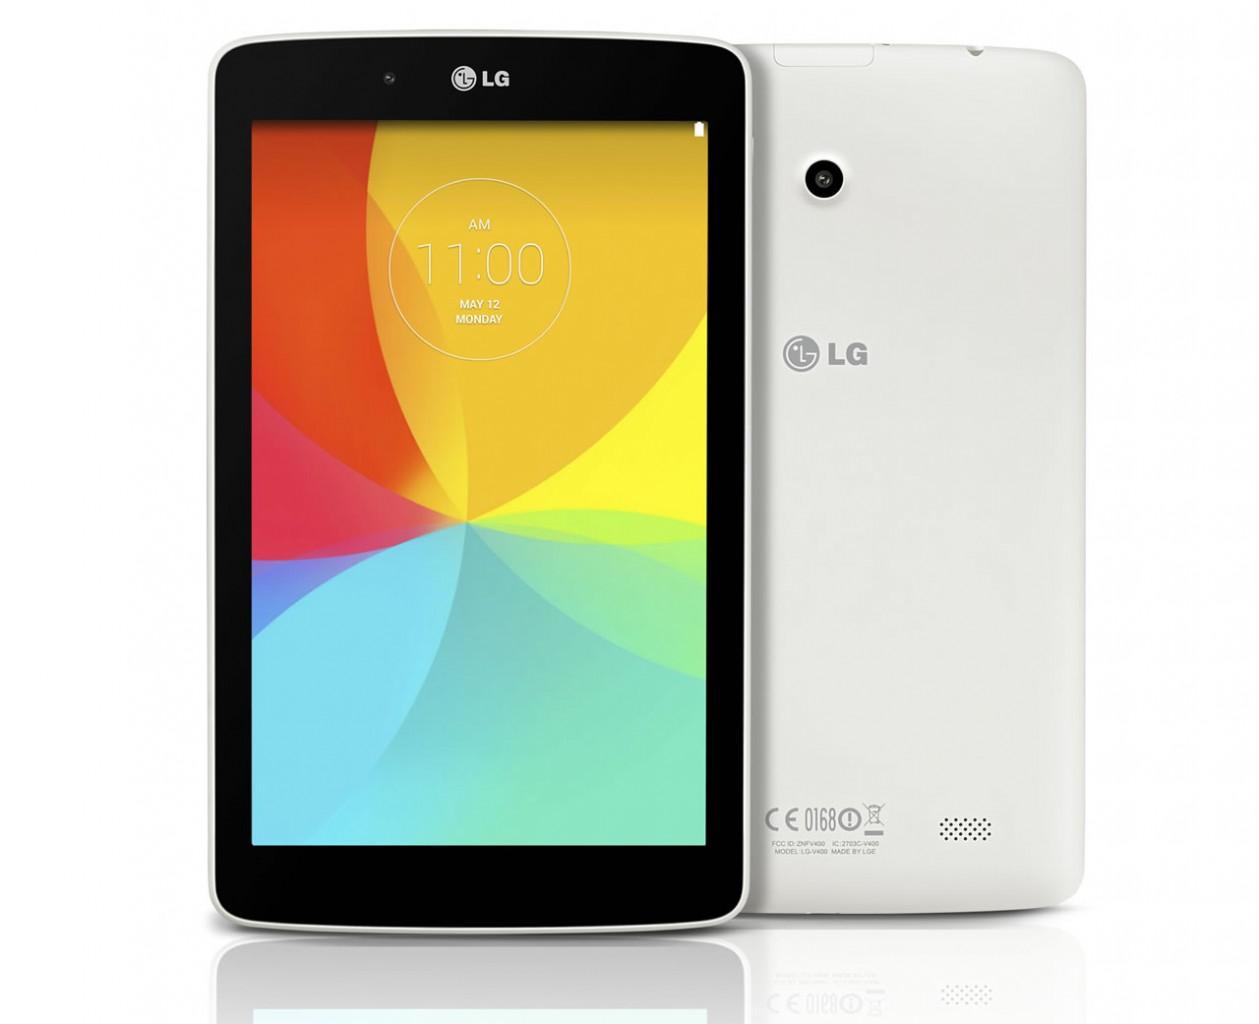 LG-G-pad-7-pas-chere-amazon-bon-plan